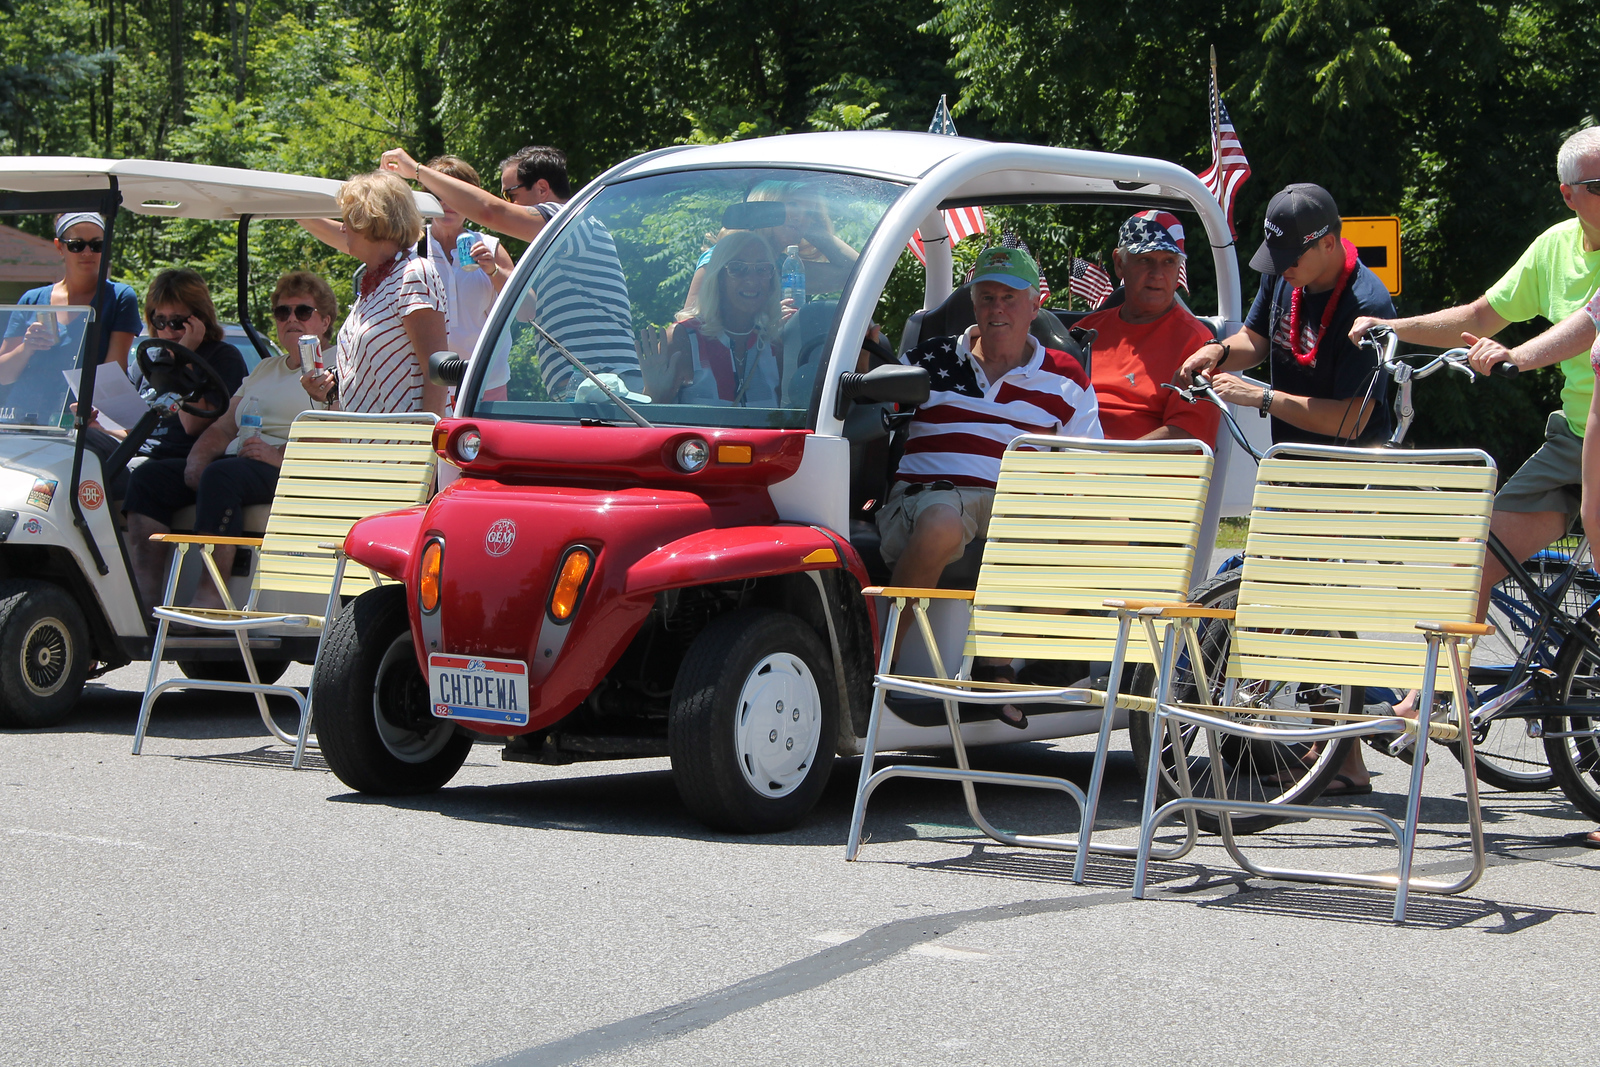 LAWRENCE PANTAGES / GAZETTE Paul and Pam Vereb of Chippewa Lake Village had a shady seat in their GEM electric vehicle for Tuesday's July 4 parade.